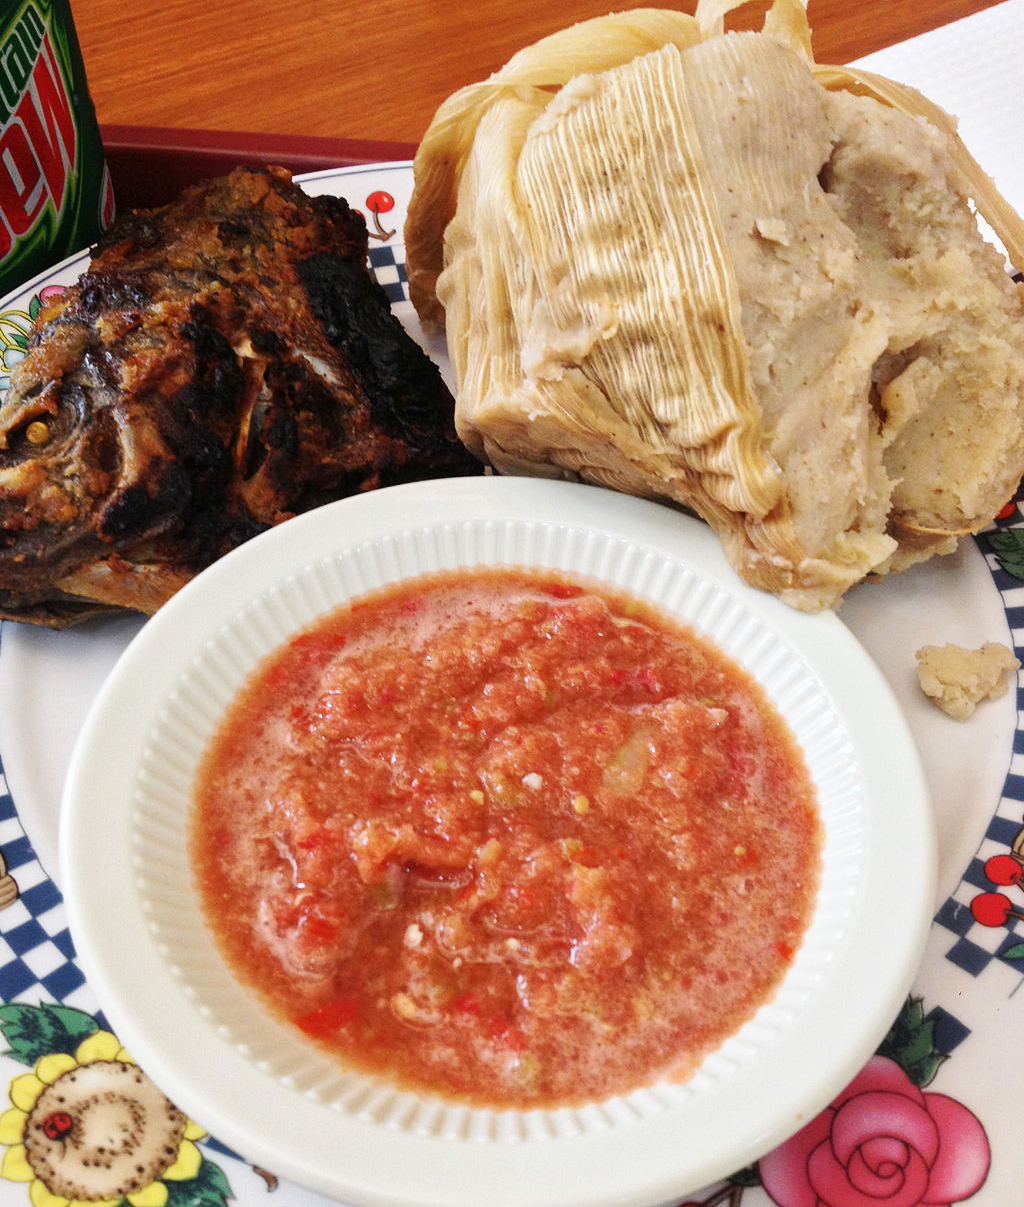 Kenkey is a sour mash made from corn, typically served with fried fish and pepper sauce in a typical Ghanaian meal.